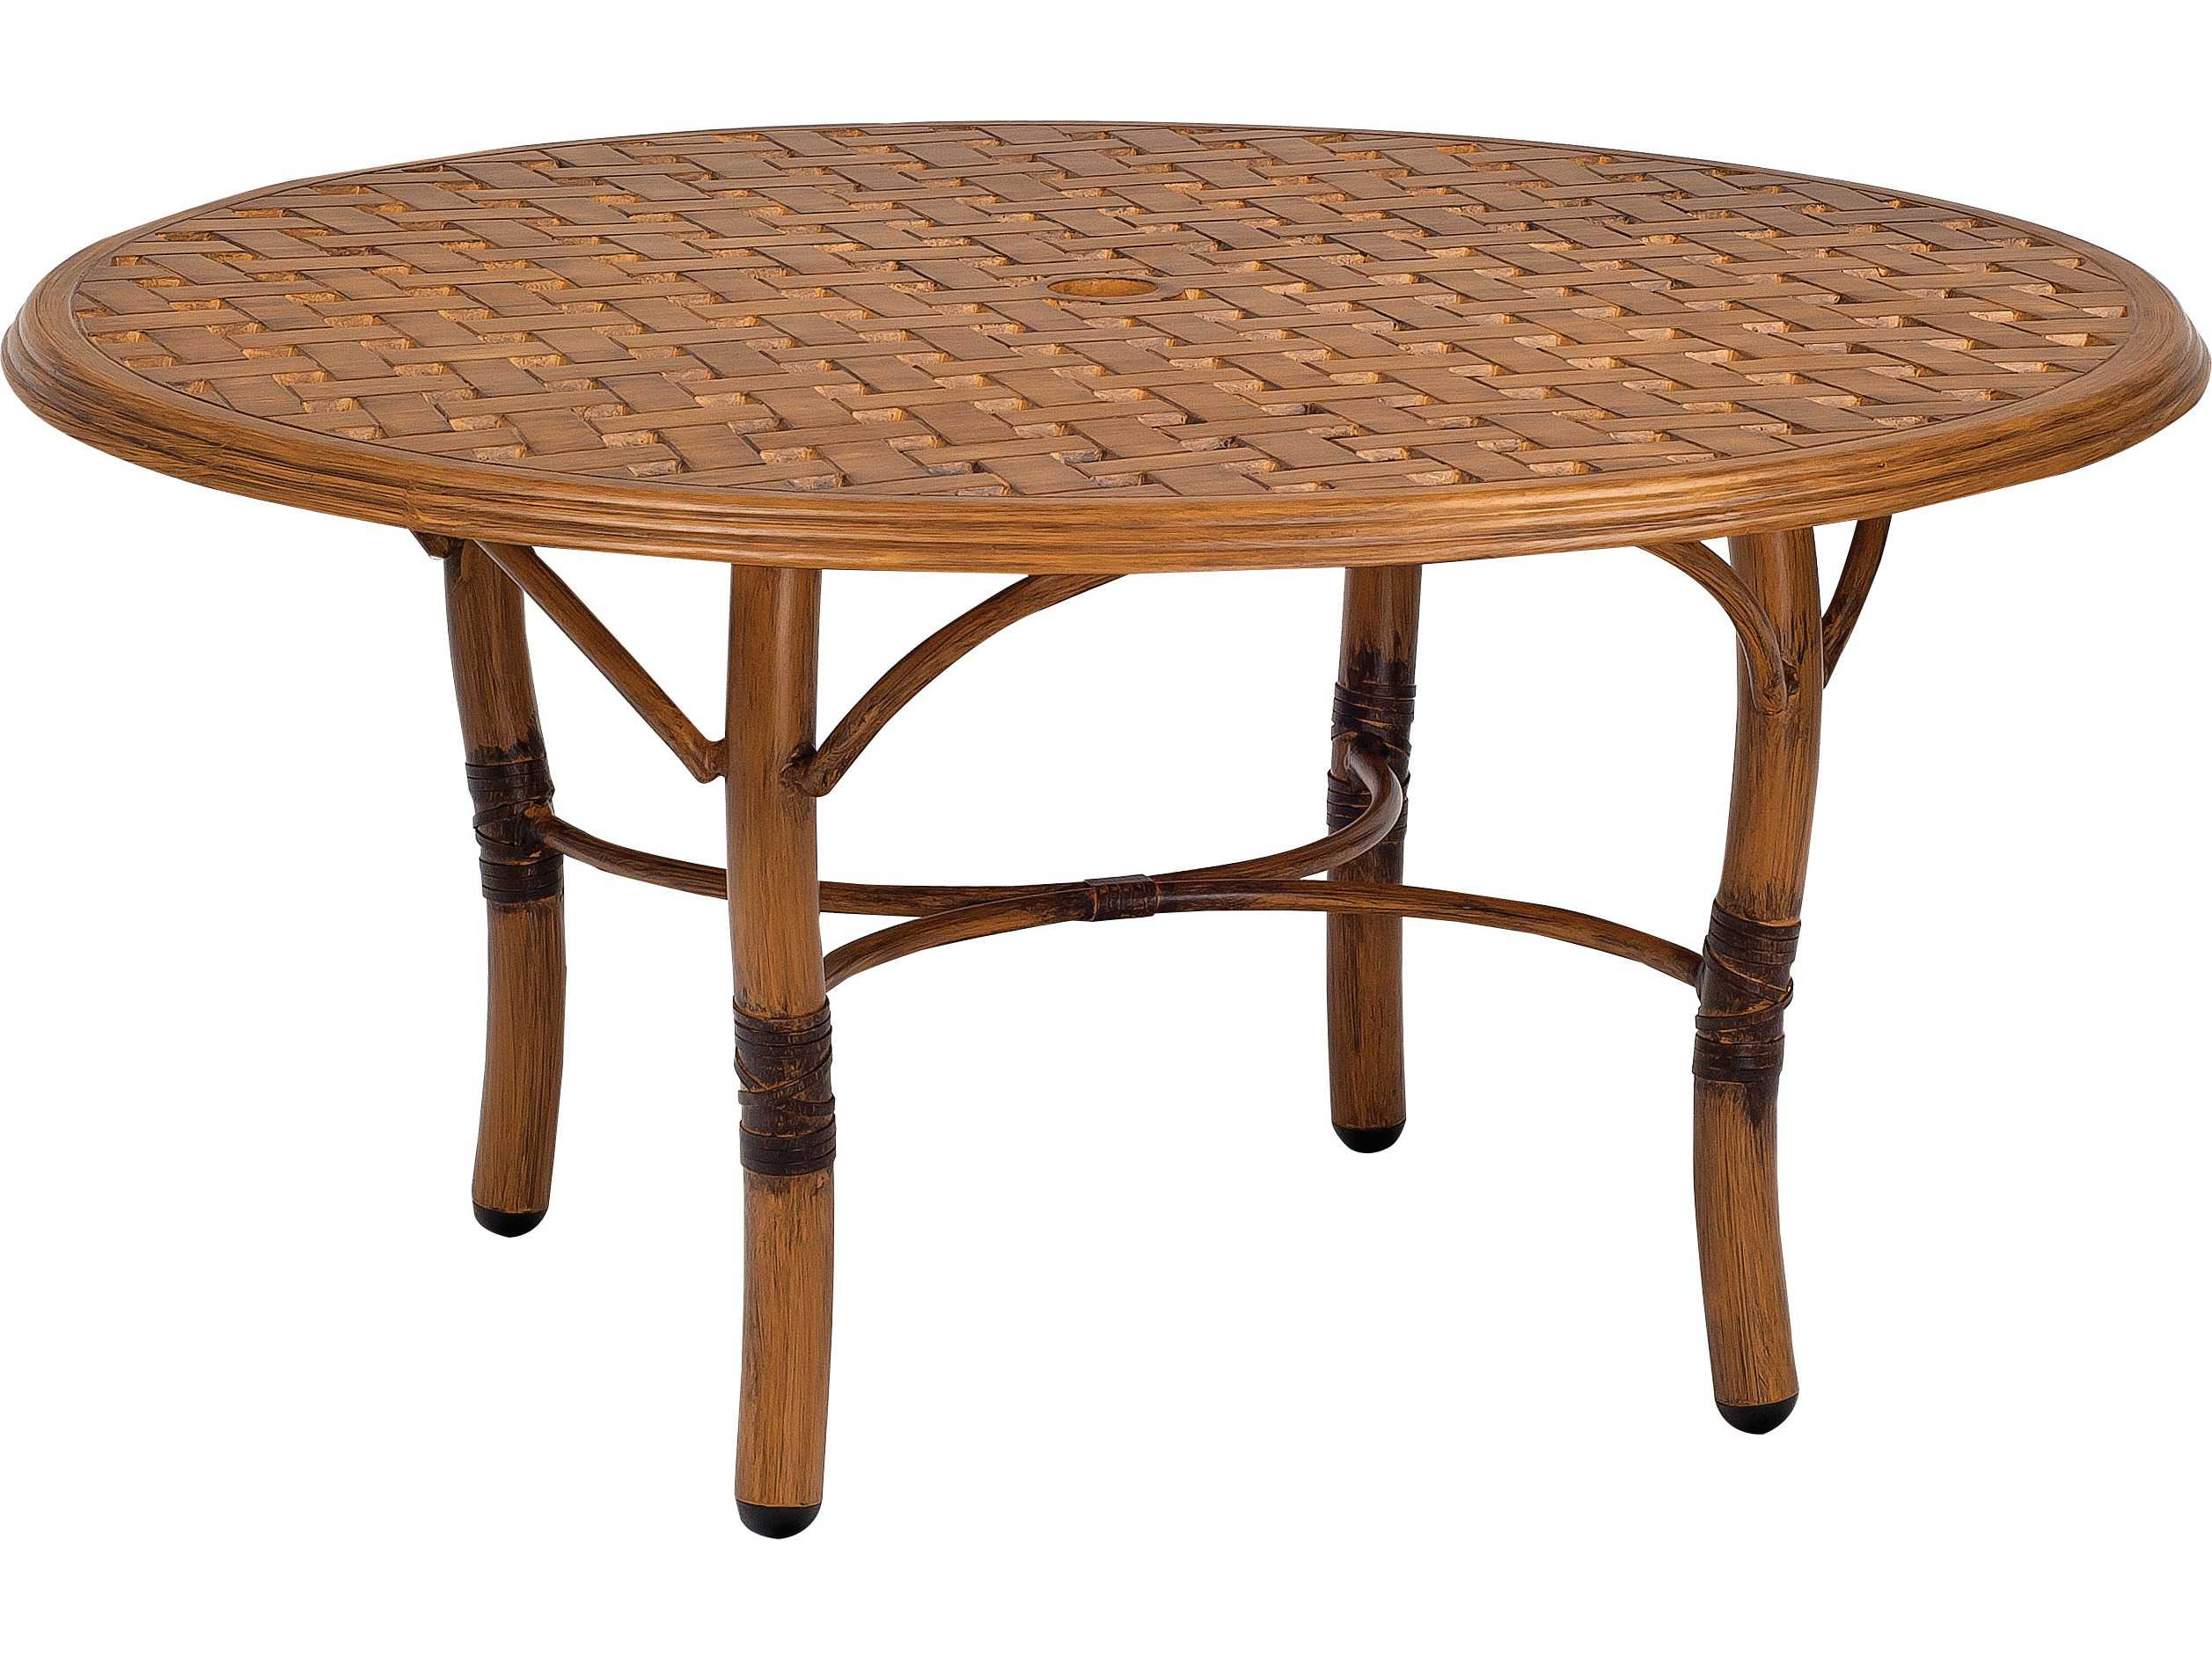 Woodard Glade Isle Aluminum 36 Round Thatch Top Coffee Table 1t54bt